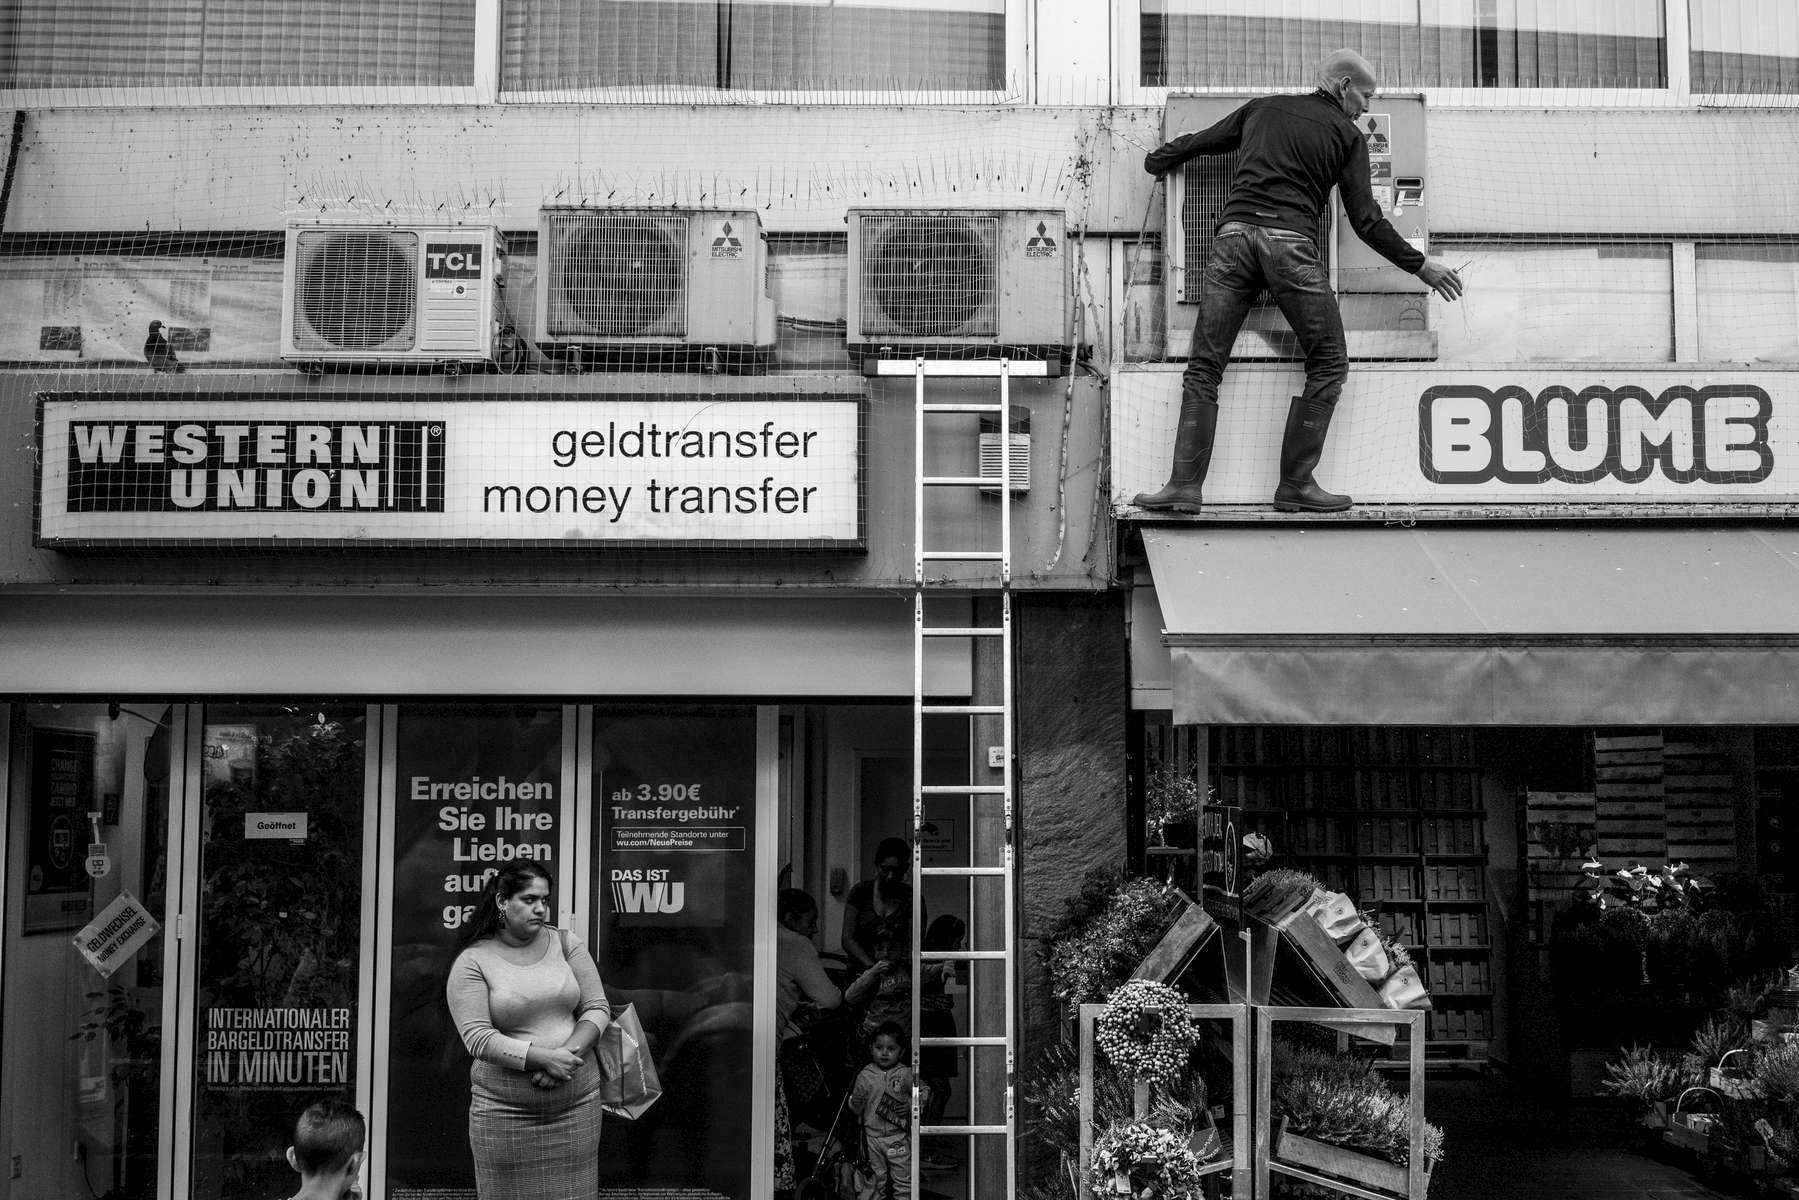 Andreas Kappelmann is freeing pigeons in downtown Offenbach that are trapped behind a massive bird defence system. Some of the pigeons are afraid and hiding behind the air conditioning systems. The activists of the 'Stadttaubenprojekt' often risk their health and sometimes lives to free pigeons that are trapped behind nets or stuck in them - sometimes in great height. The bird defence was installed by a pest control worker who did not check if there were pigeons behind the air conditioning system before he installed the net and the spikes. It is permitted in Germany to cut open bird defence systems if birds are trapped behind them. But municipalities and companies not only install nets and spikes:  Every now and then they also attach some kind of glue to buildings in which pigeons and other birds get stuck and sometimes die. Hawks are also used to get rid of pigeons, although they do not make a difference between pigeons and other birds.